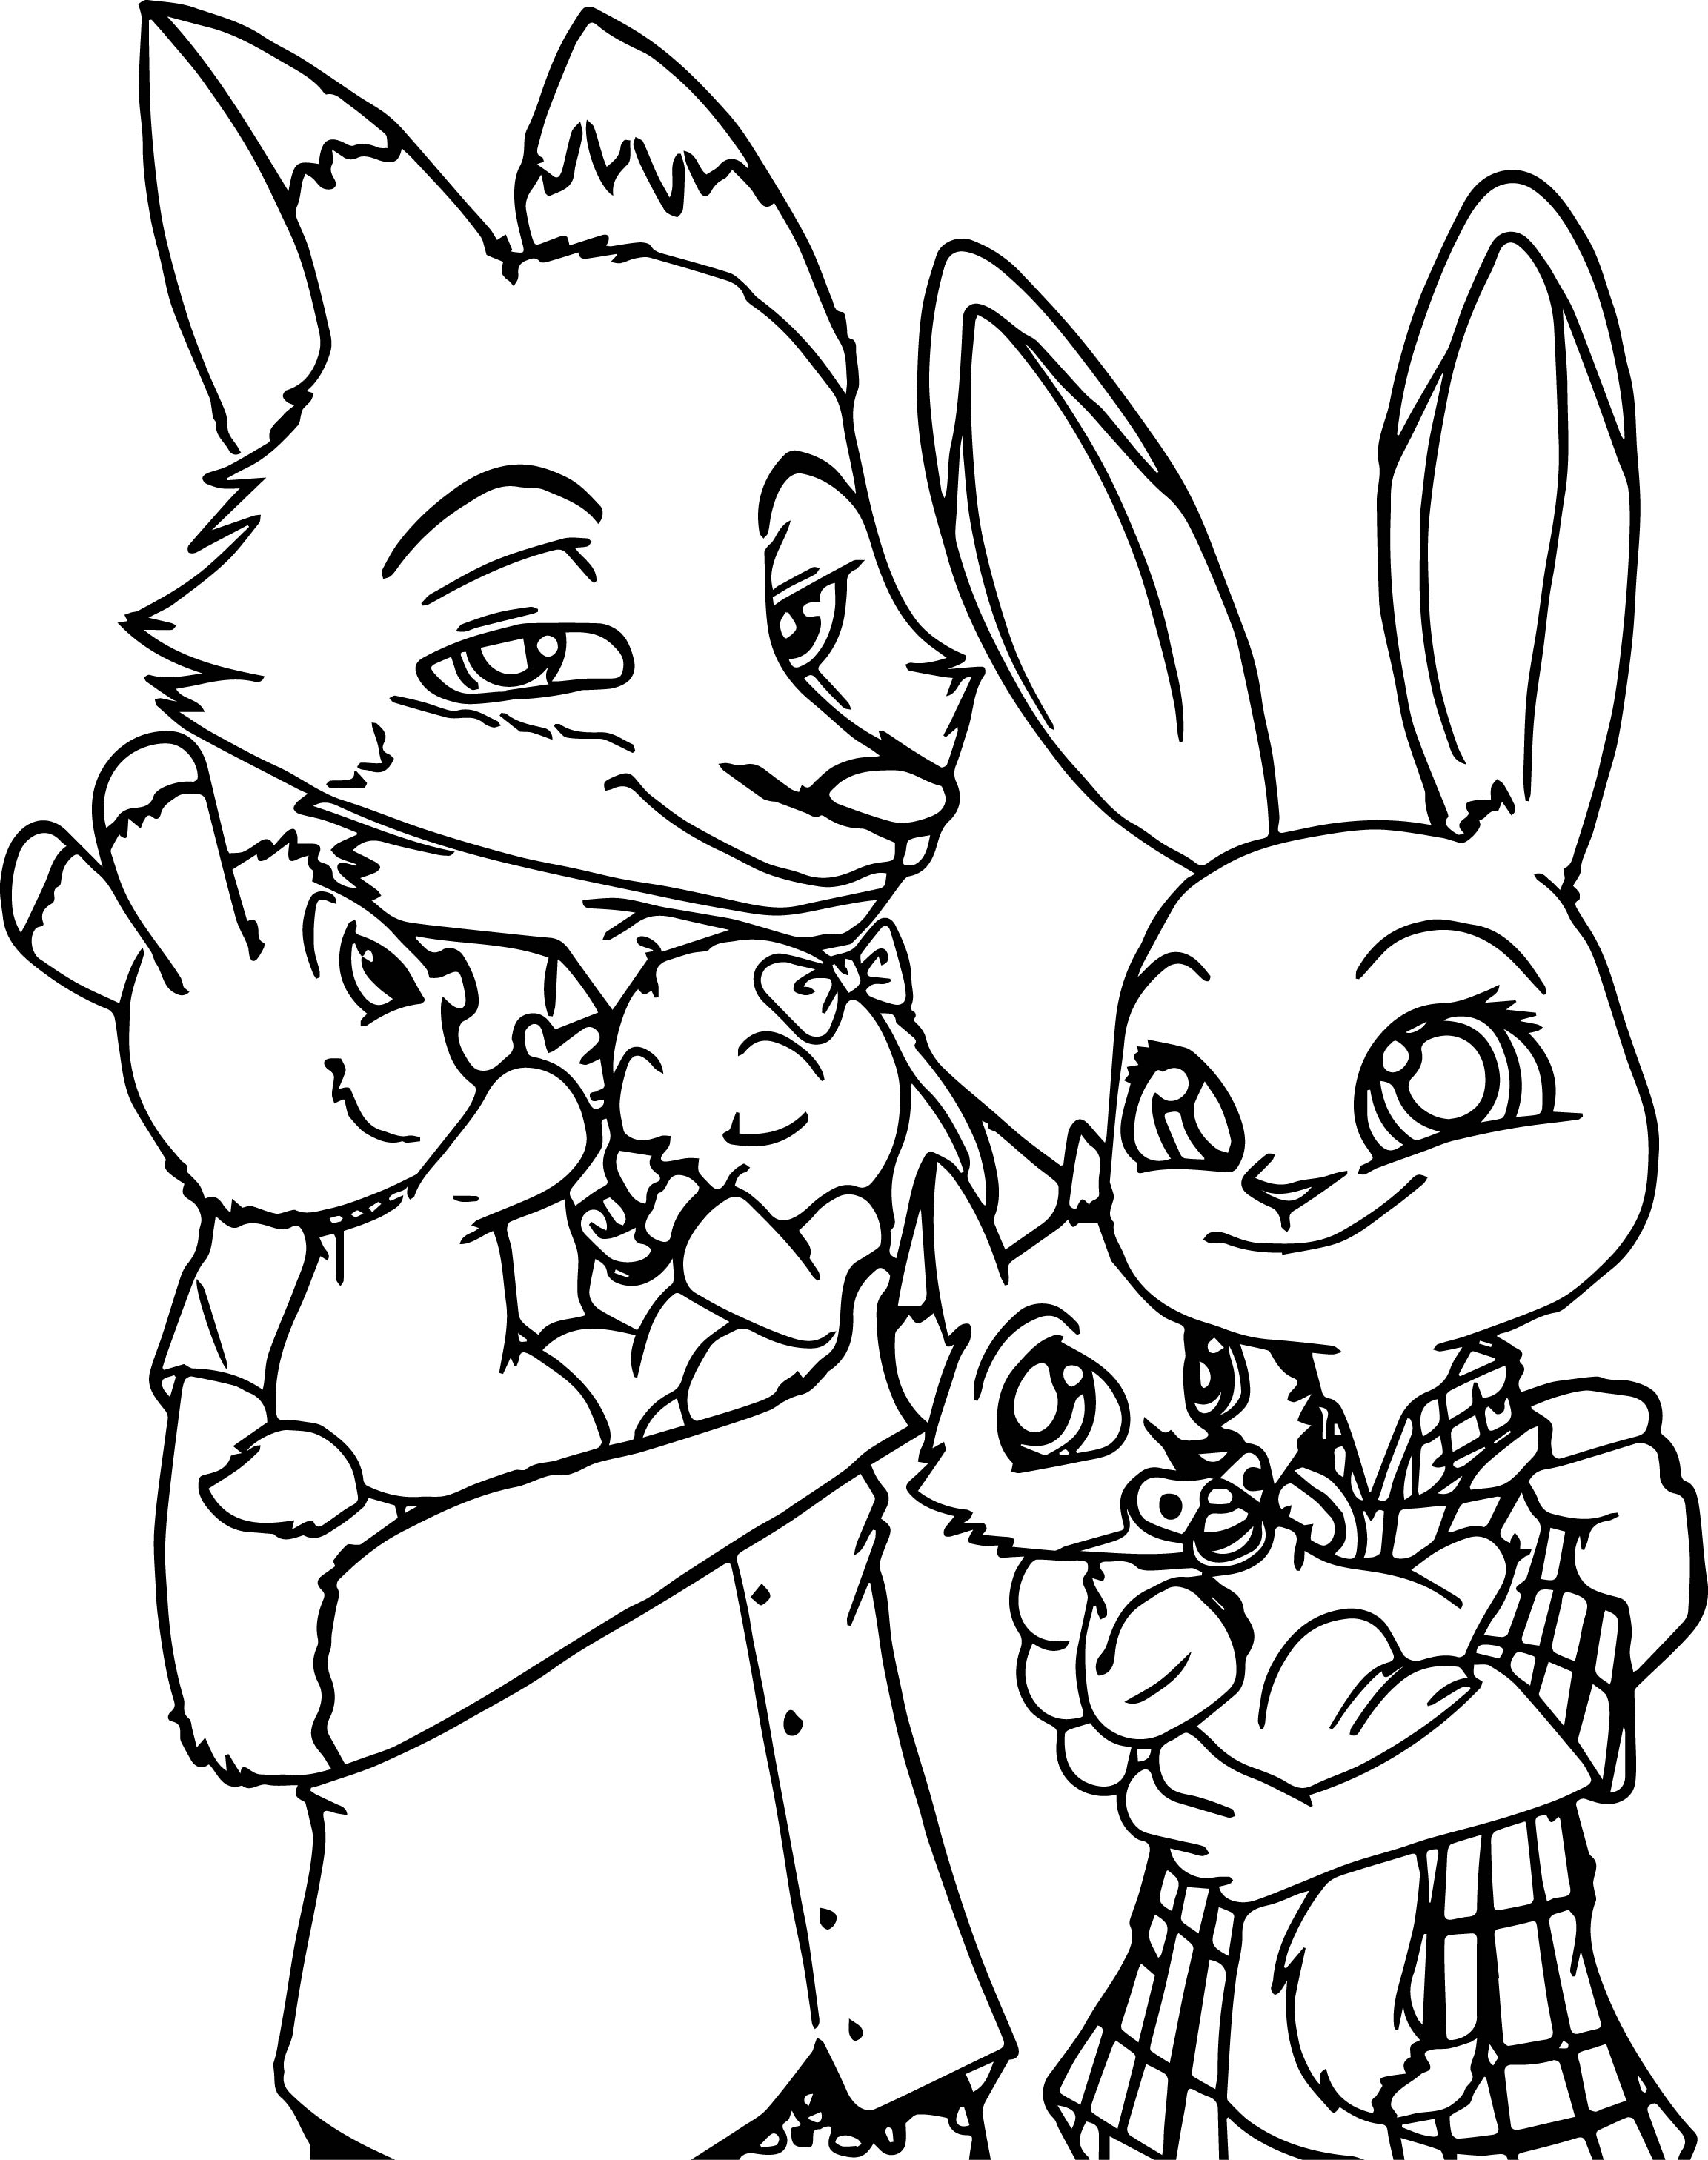 2305x2915 Zootopia Bunny And Fox Family Coloring Page Wecoloringpage